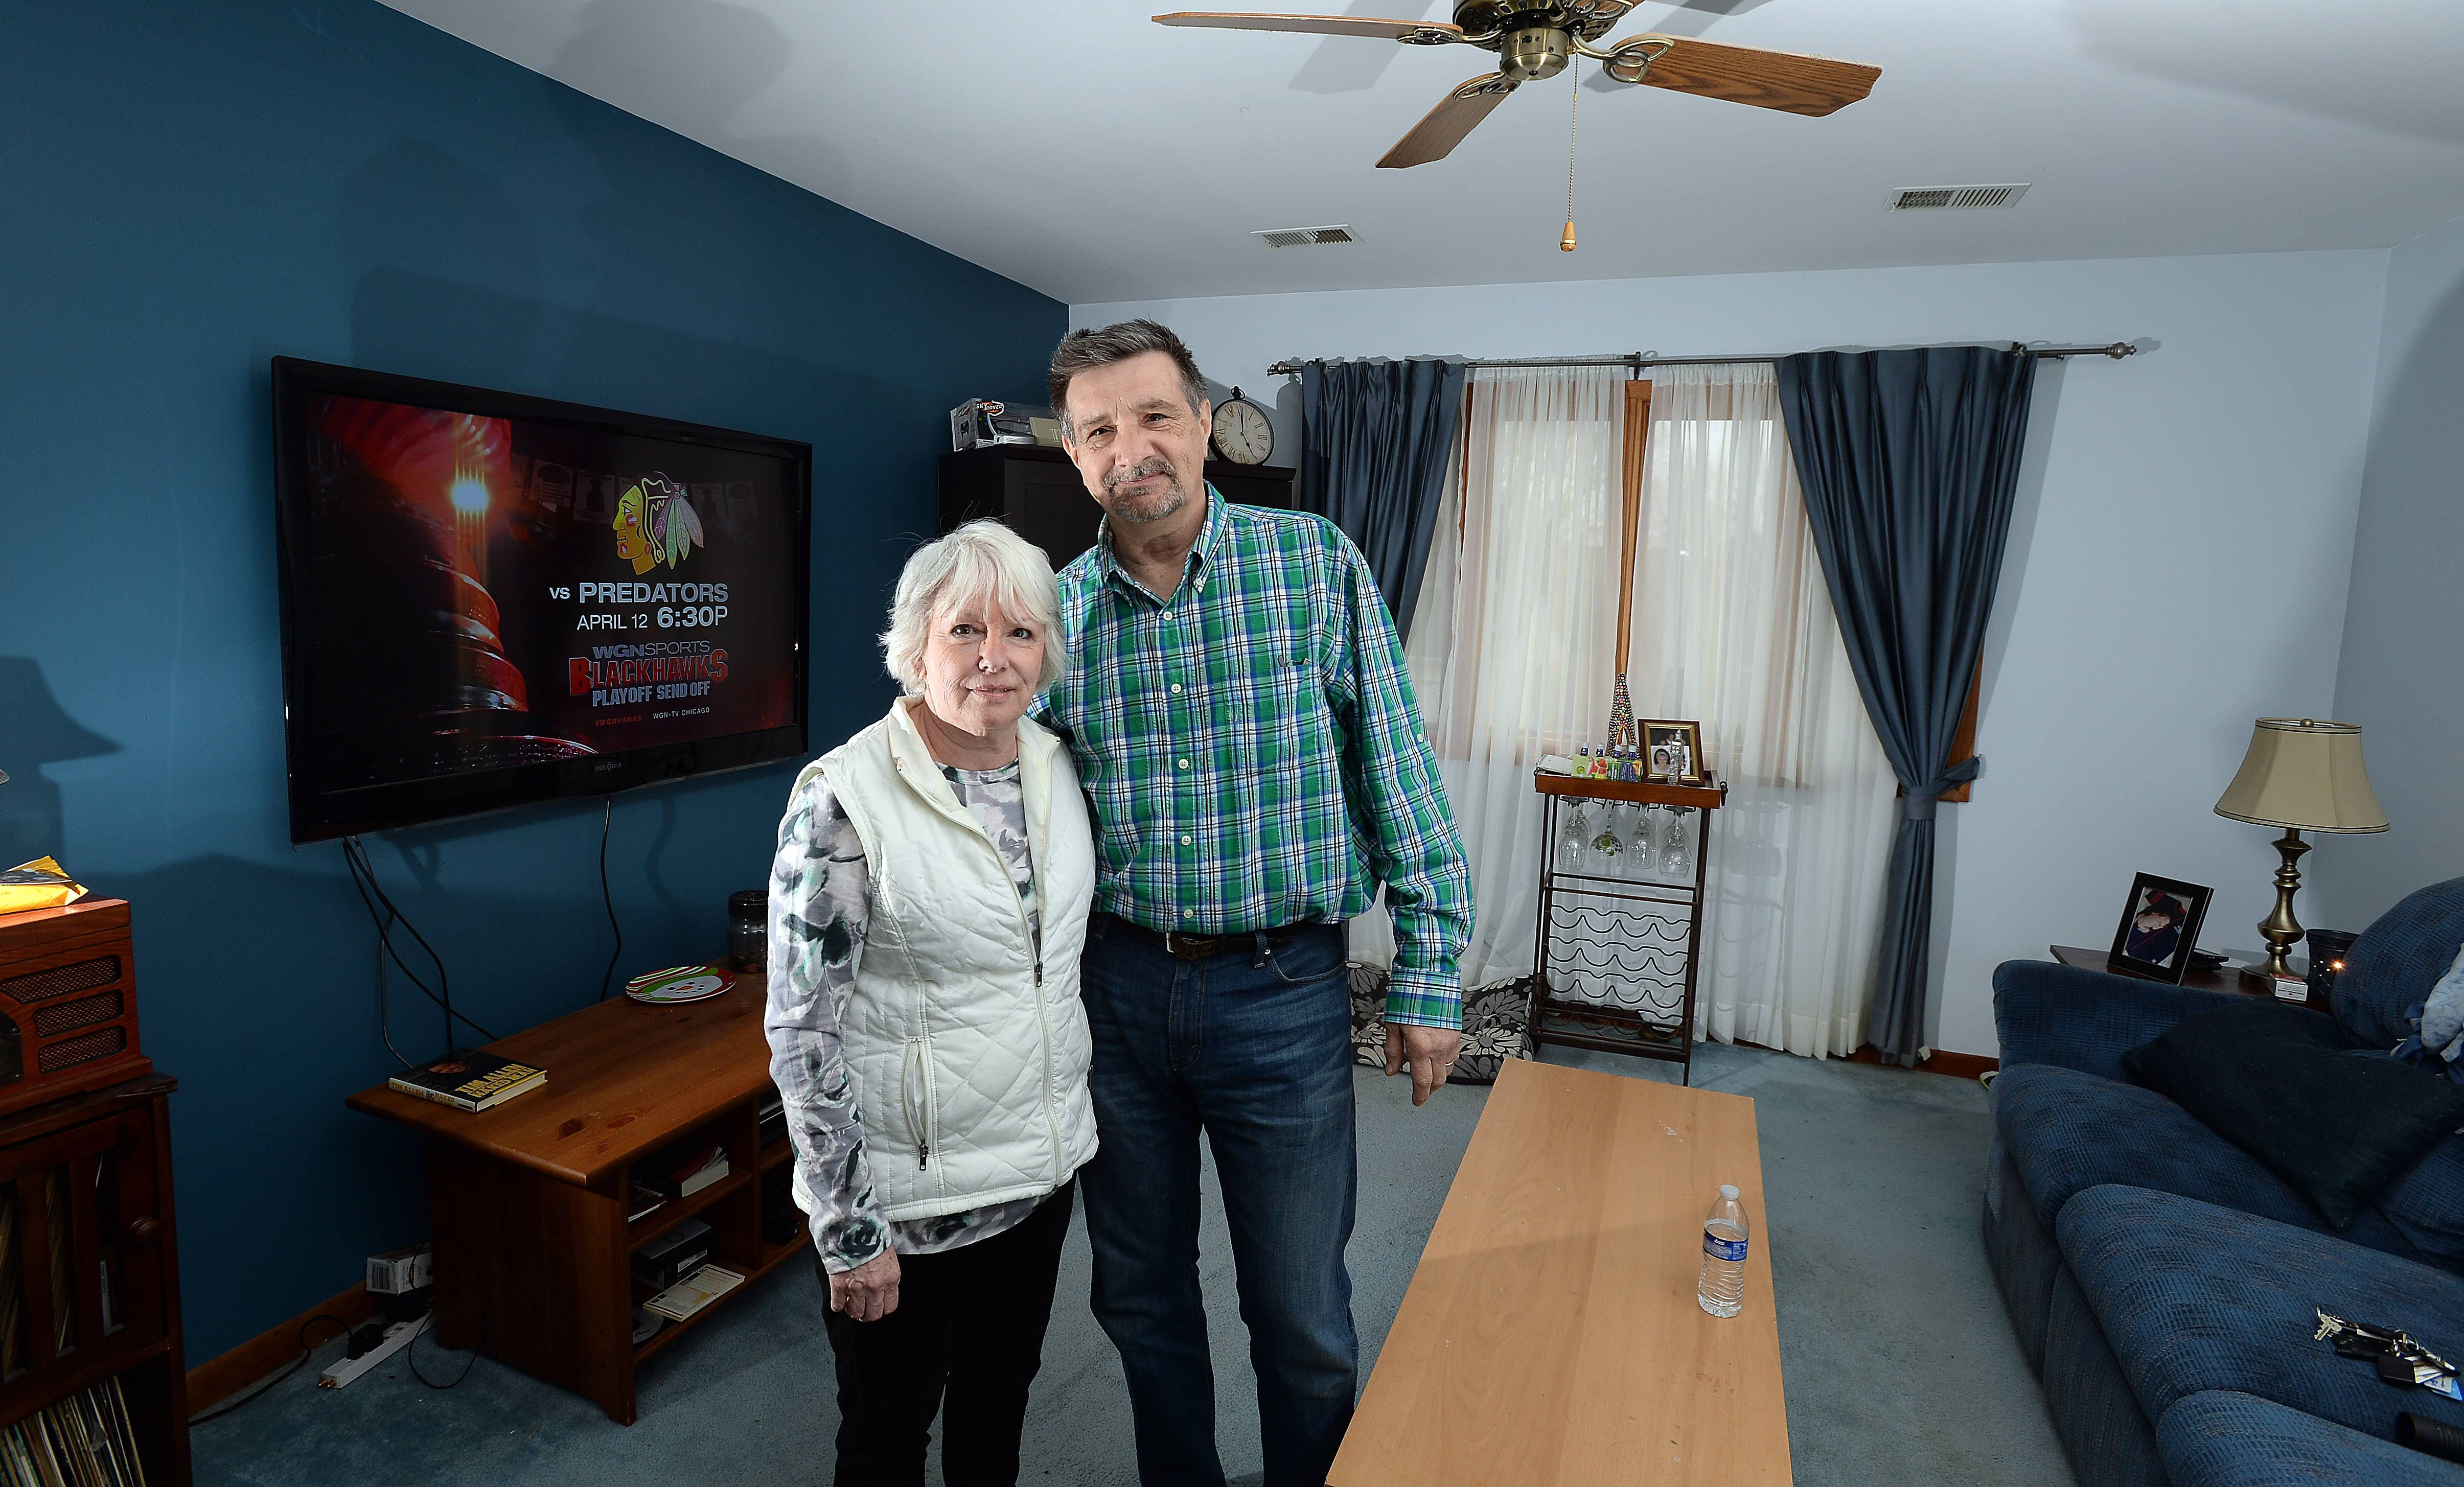 Robert and Patricia Pagni have their own upstairs living quarters in their daughter's Schaumburg home.